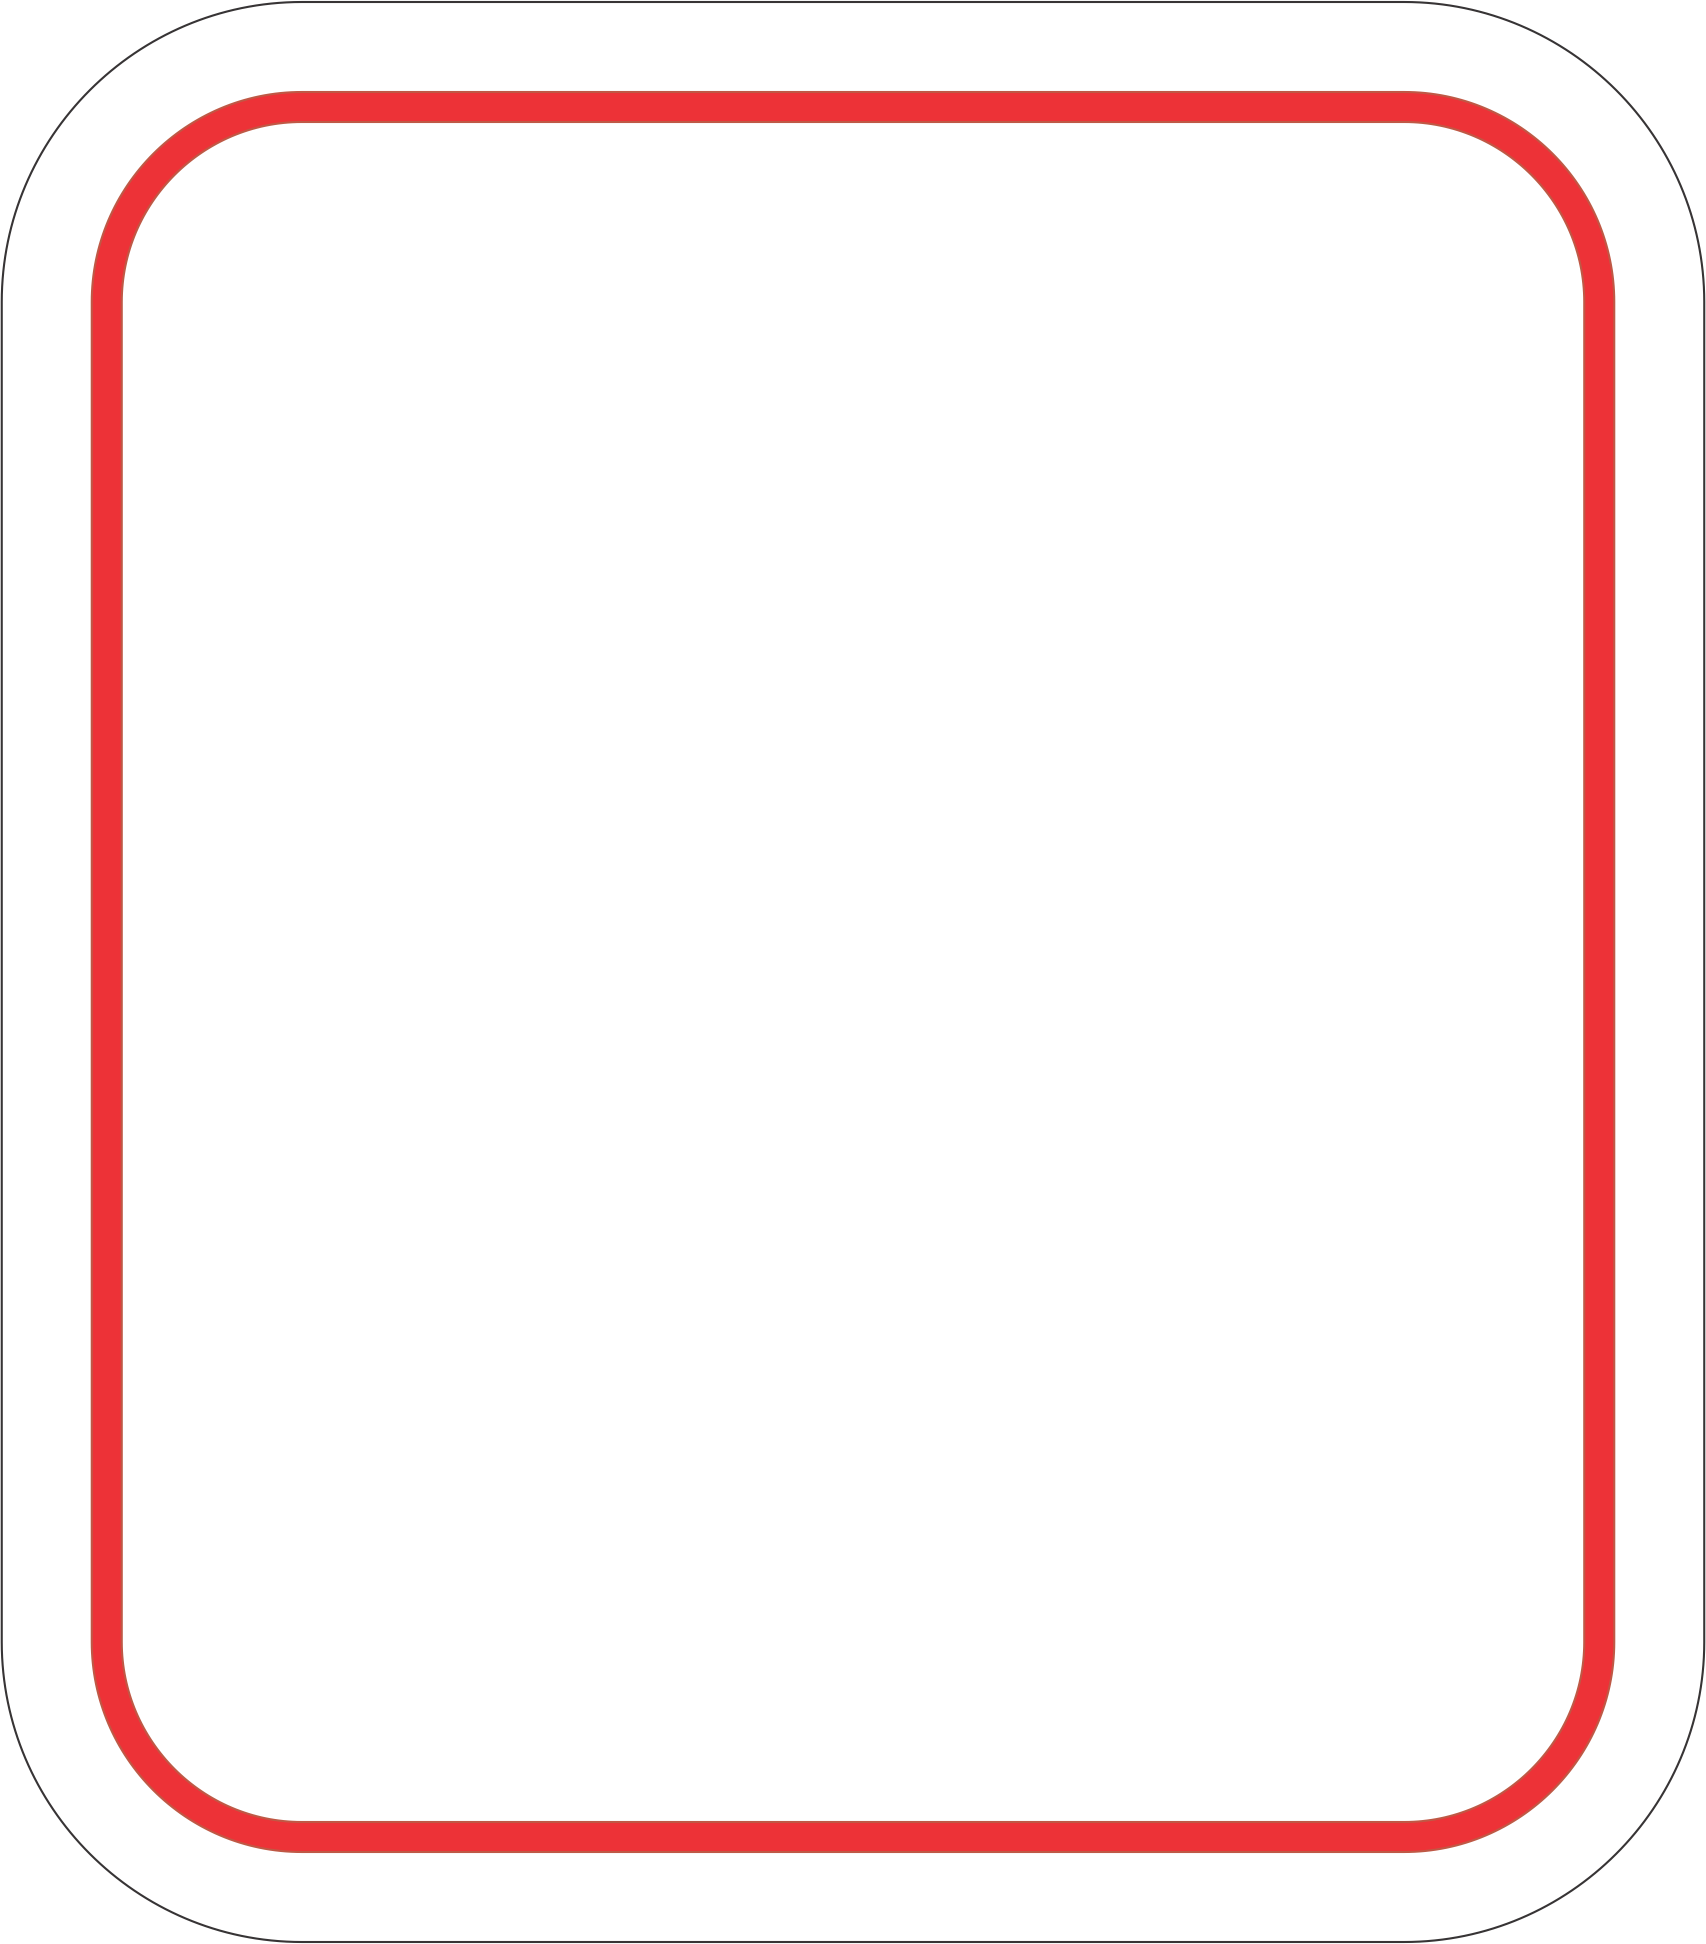 vector freeuse download Drawing rectangle clipart. Red square free on